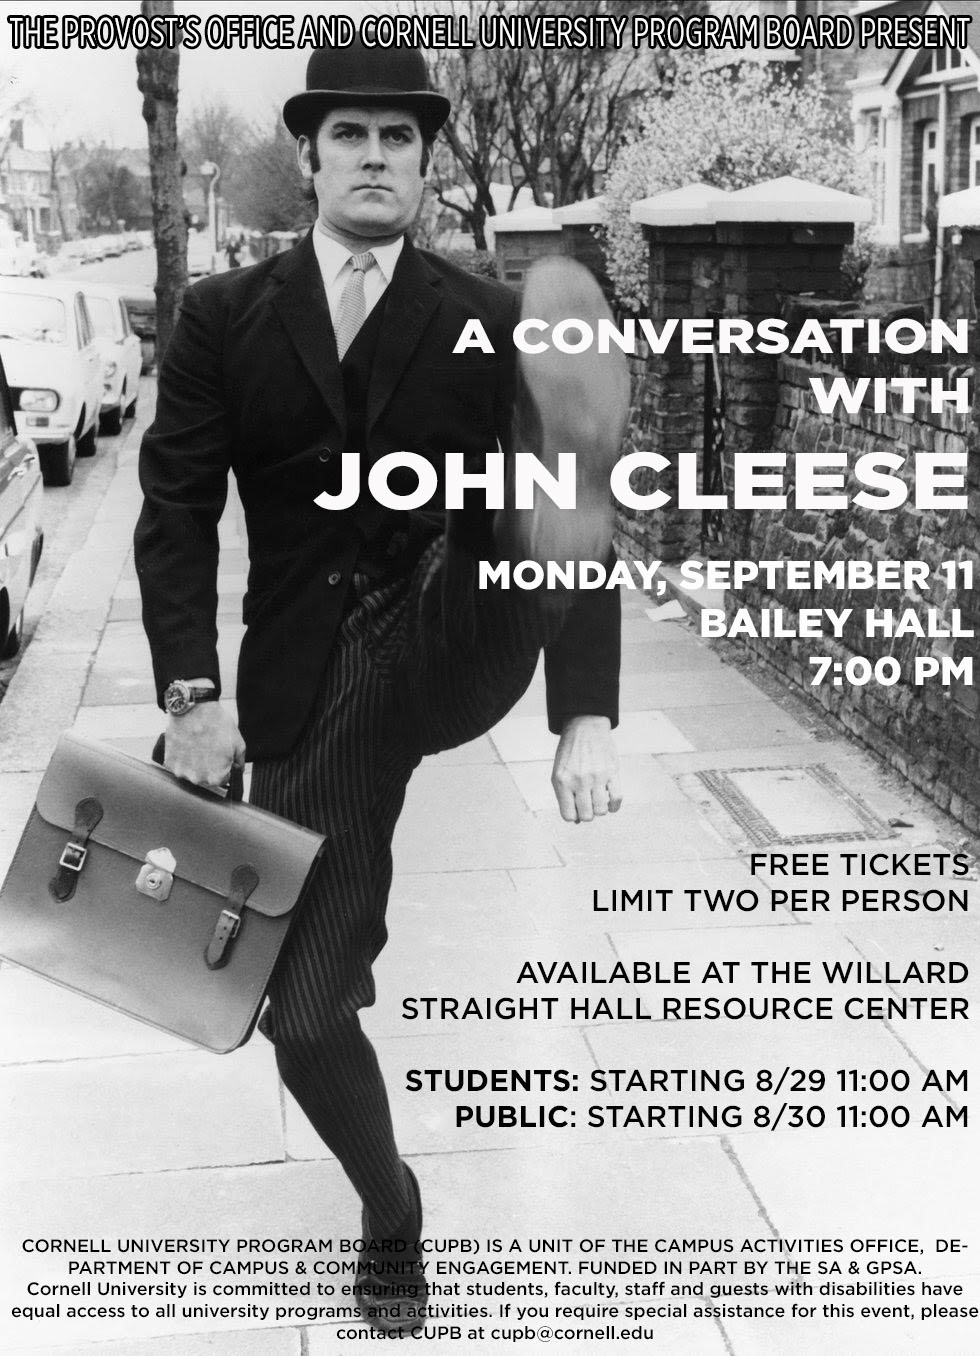 A Conversation with John Cleese